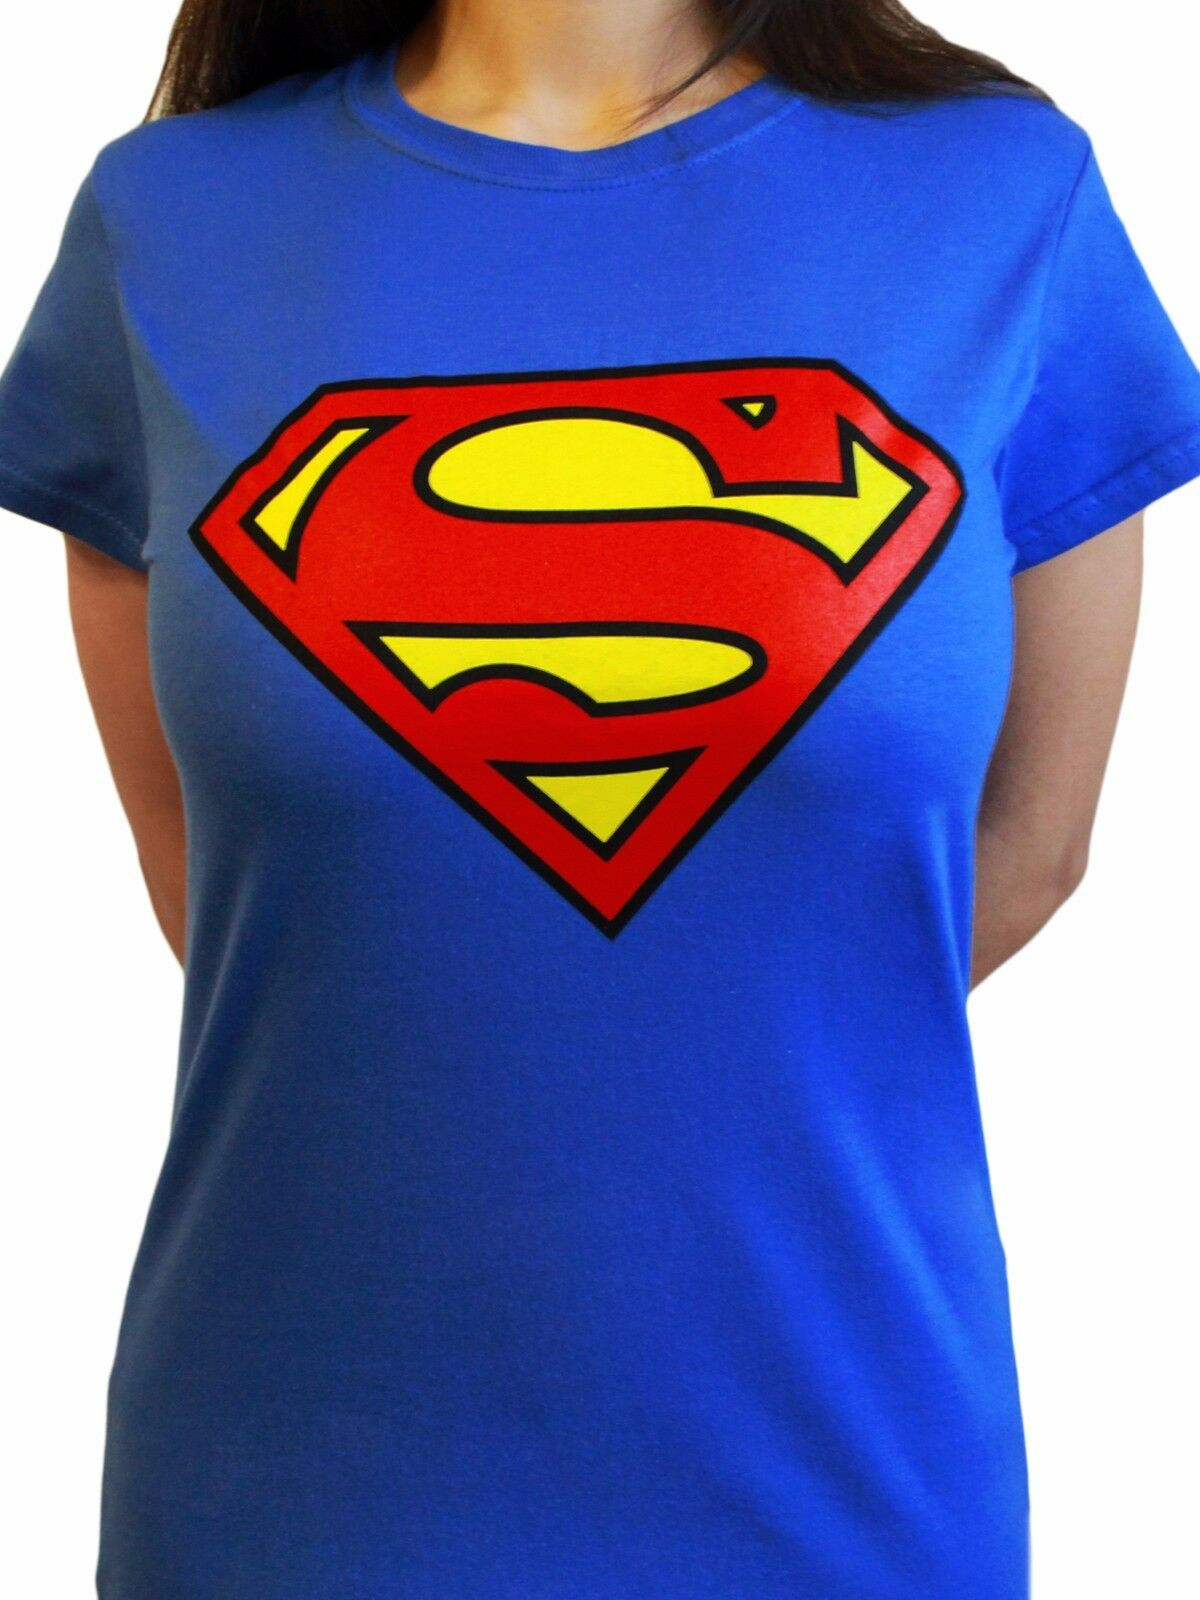 72282b48737 Superman Logo Classic Official DC Comics Supergirl Justice League ...